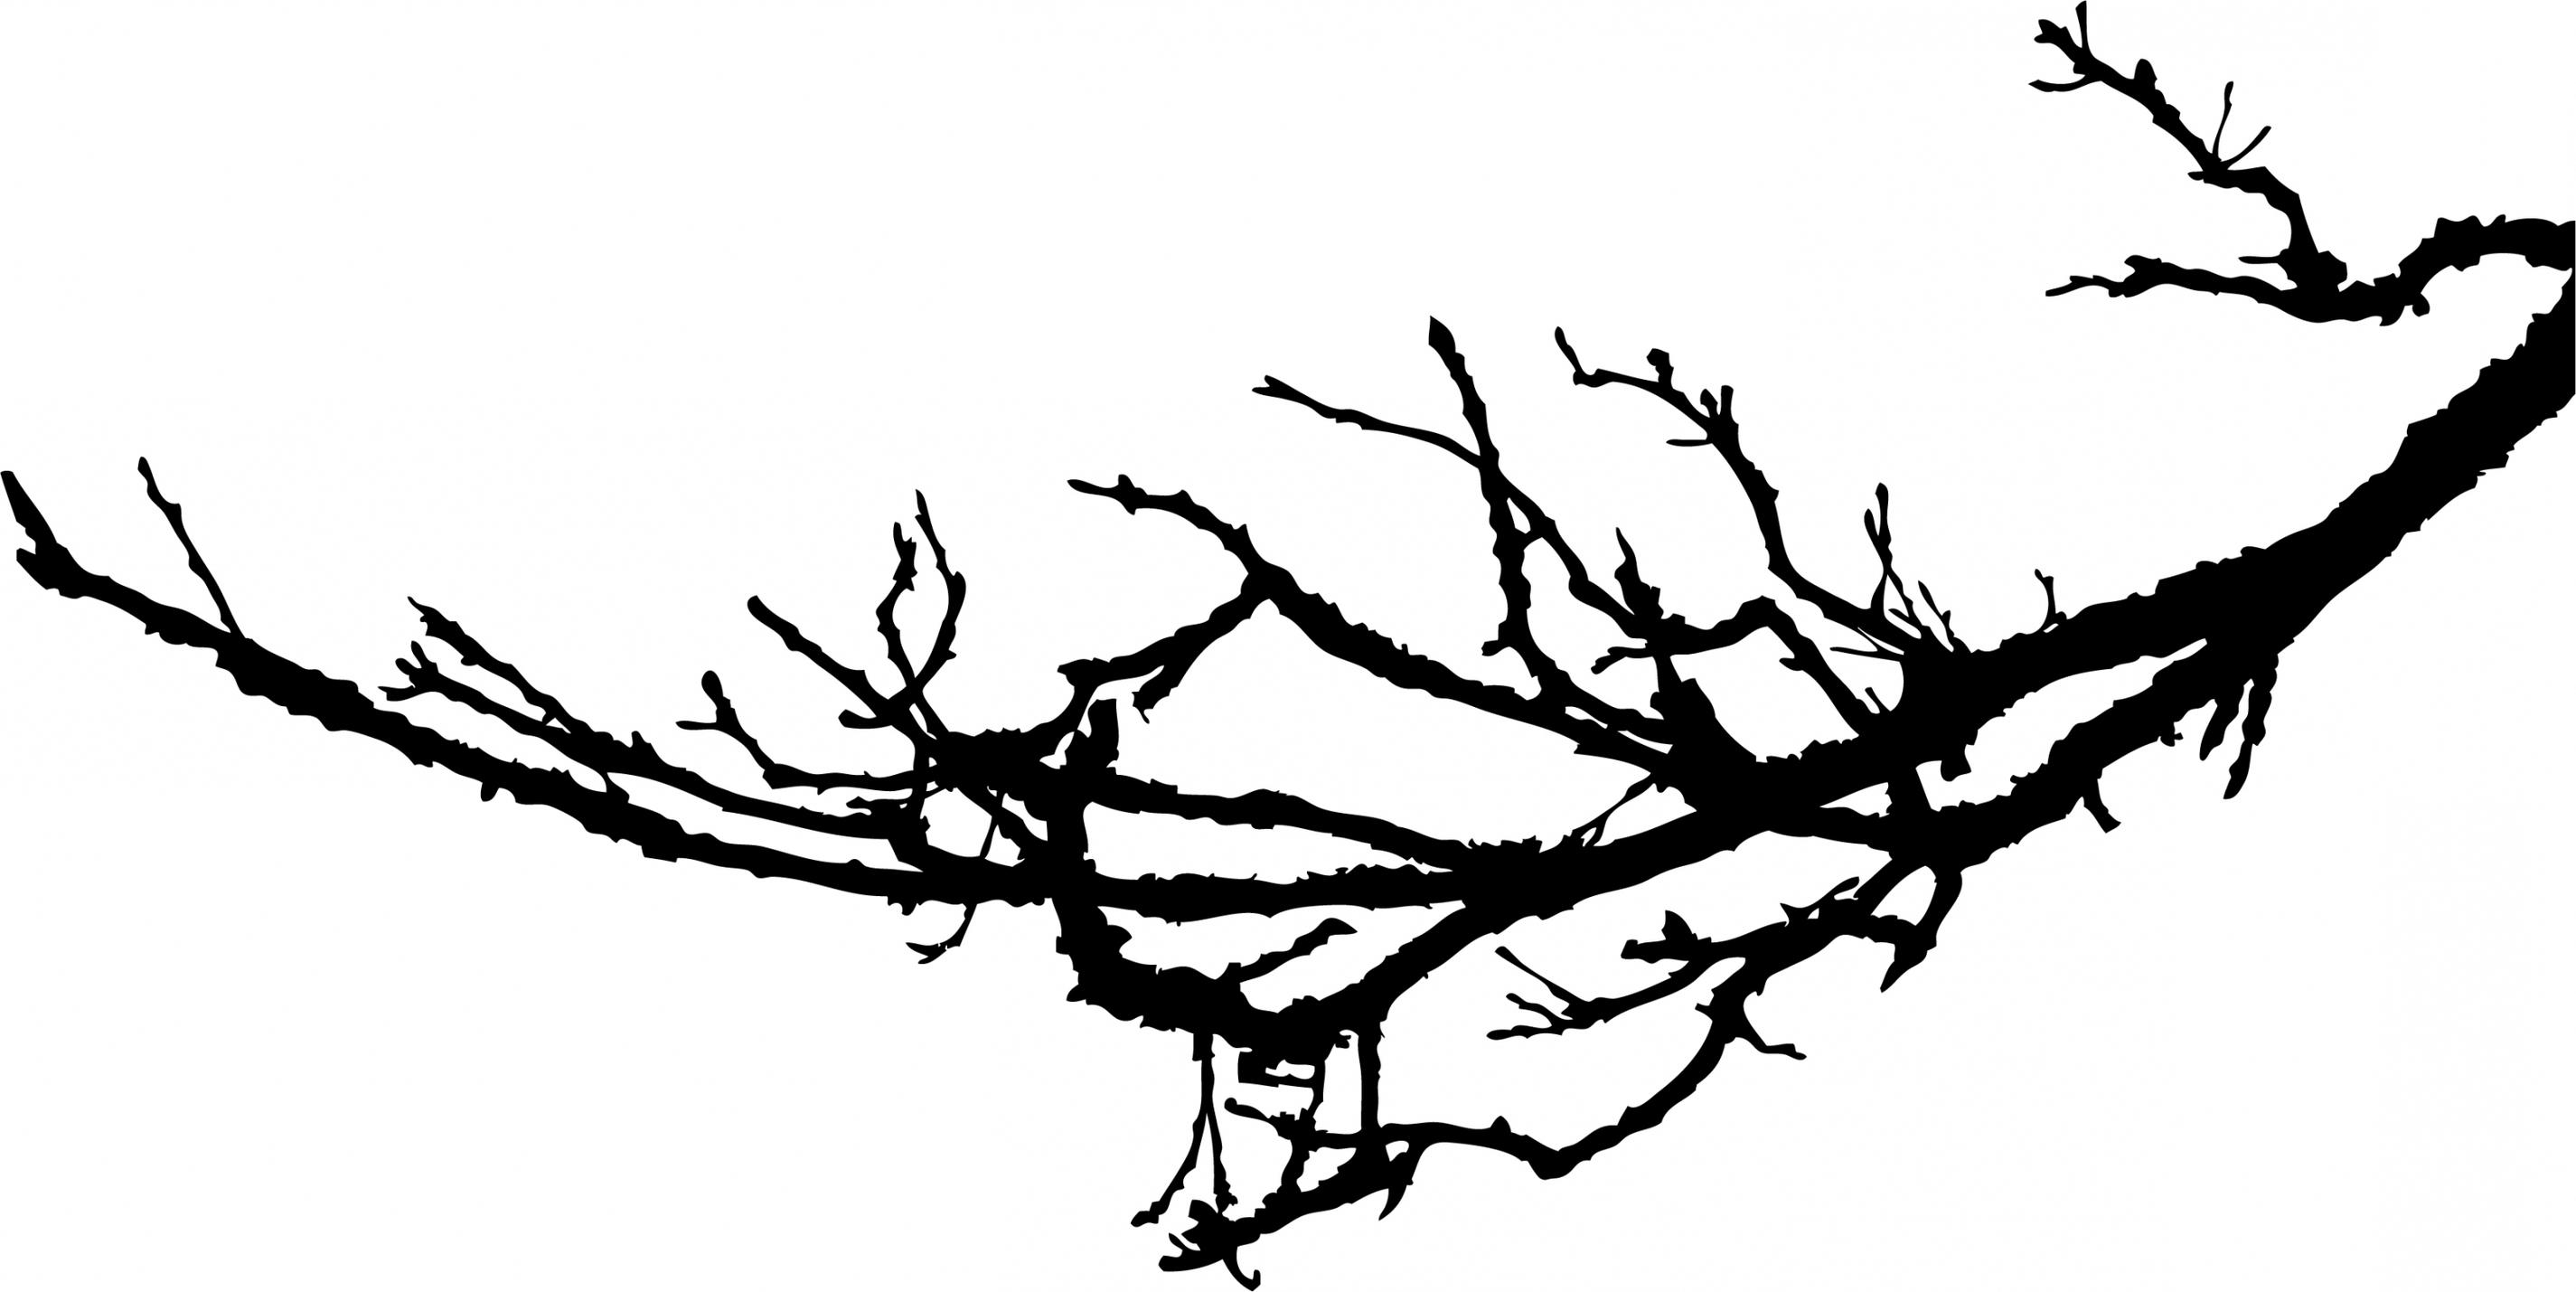 tree branch silhouette 15 tree branch silhouettes png transparent onlygfxcom tree branch silhouette